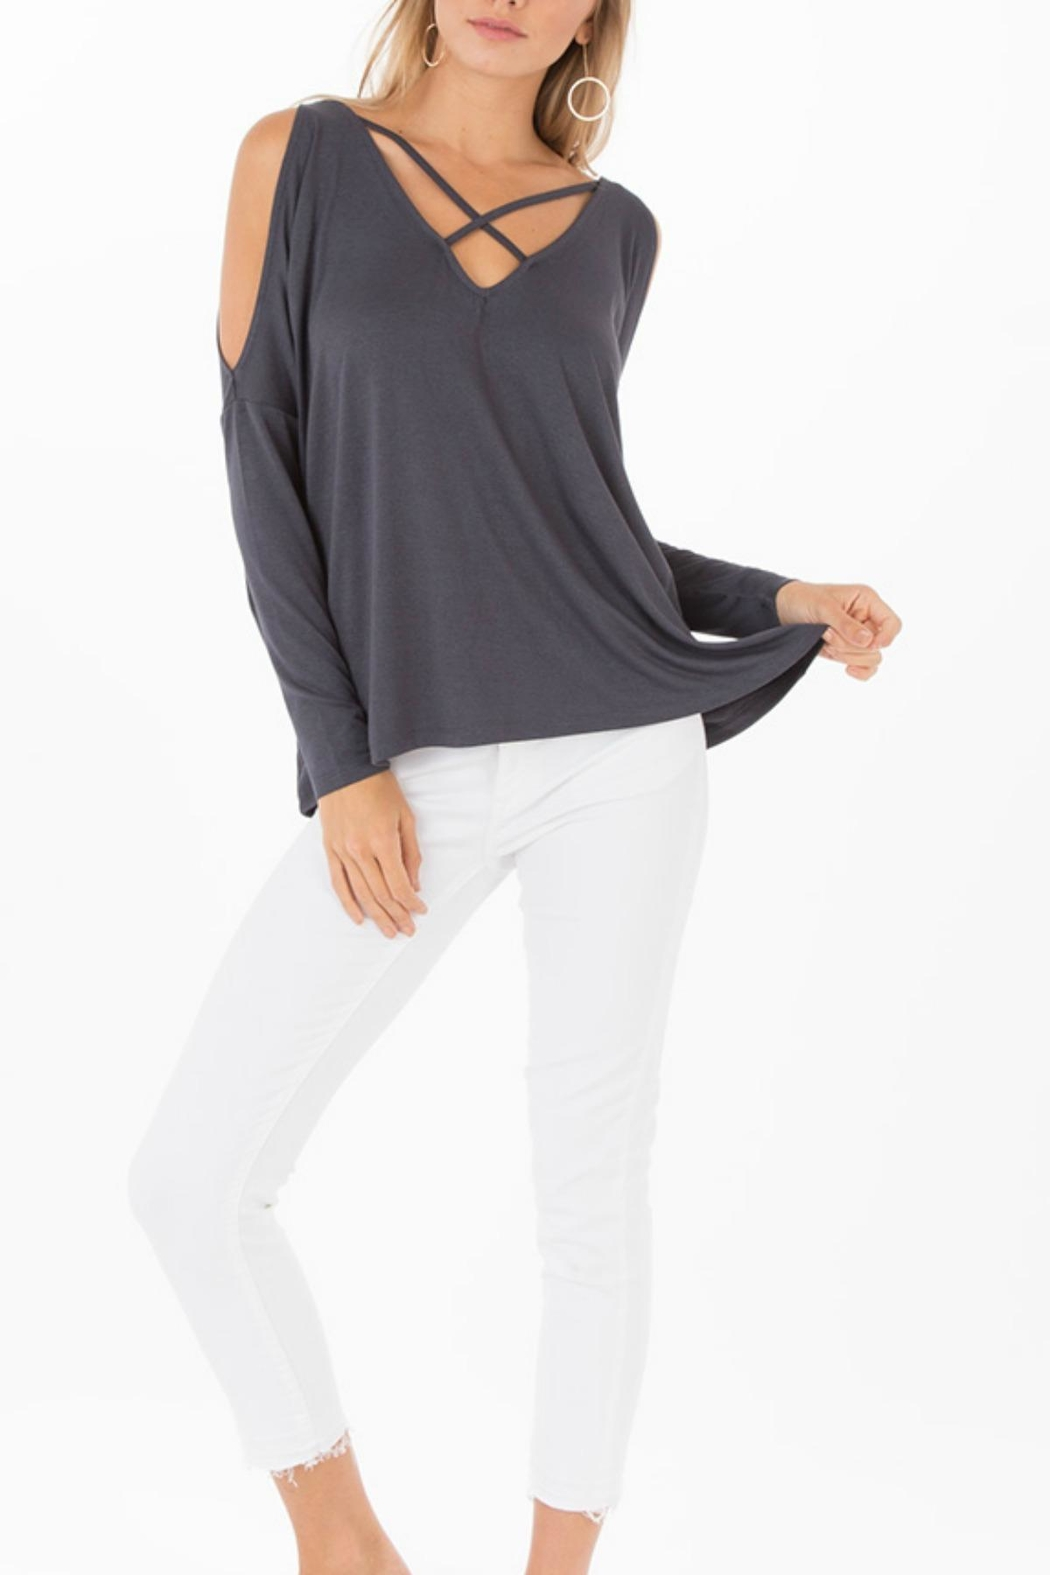 Black Swan Nataly Grey Top - Front Cropped Image